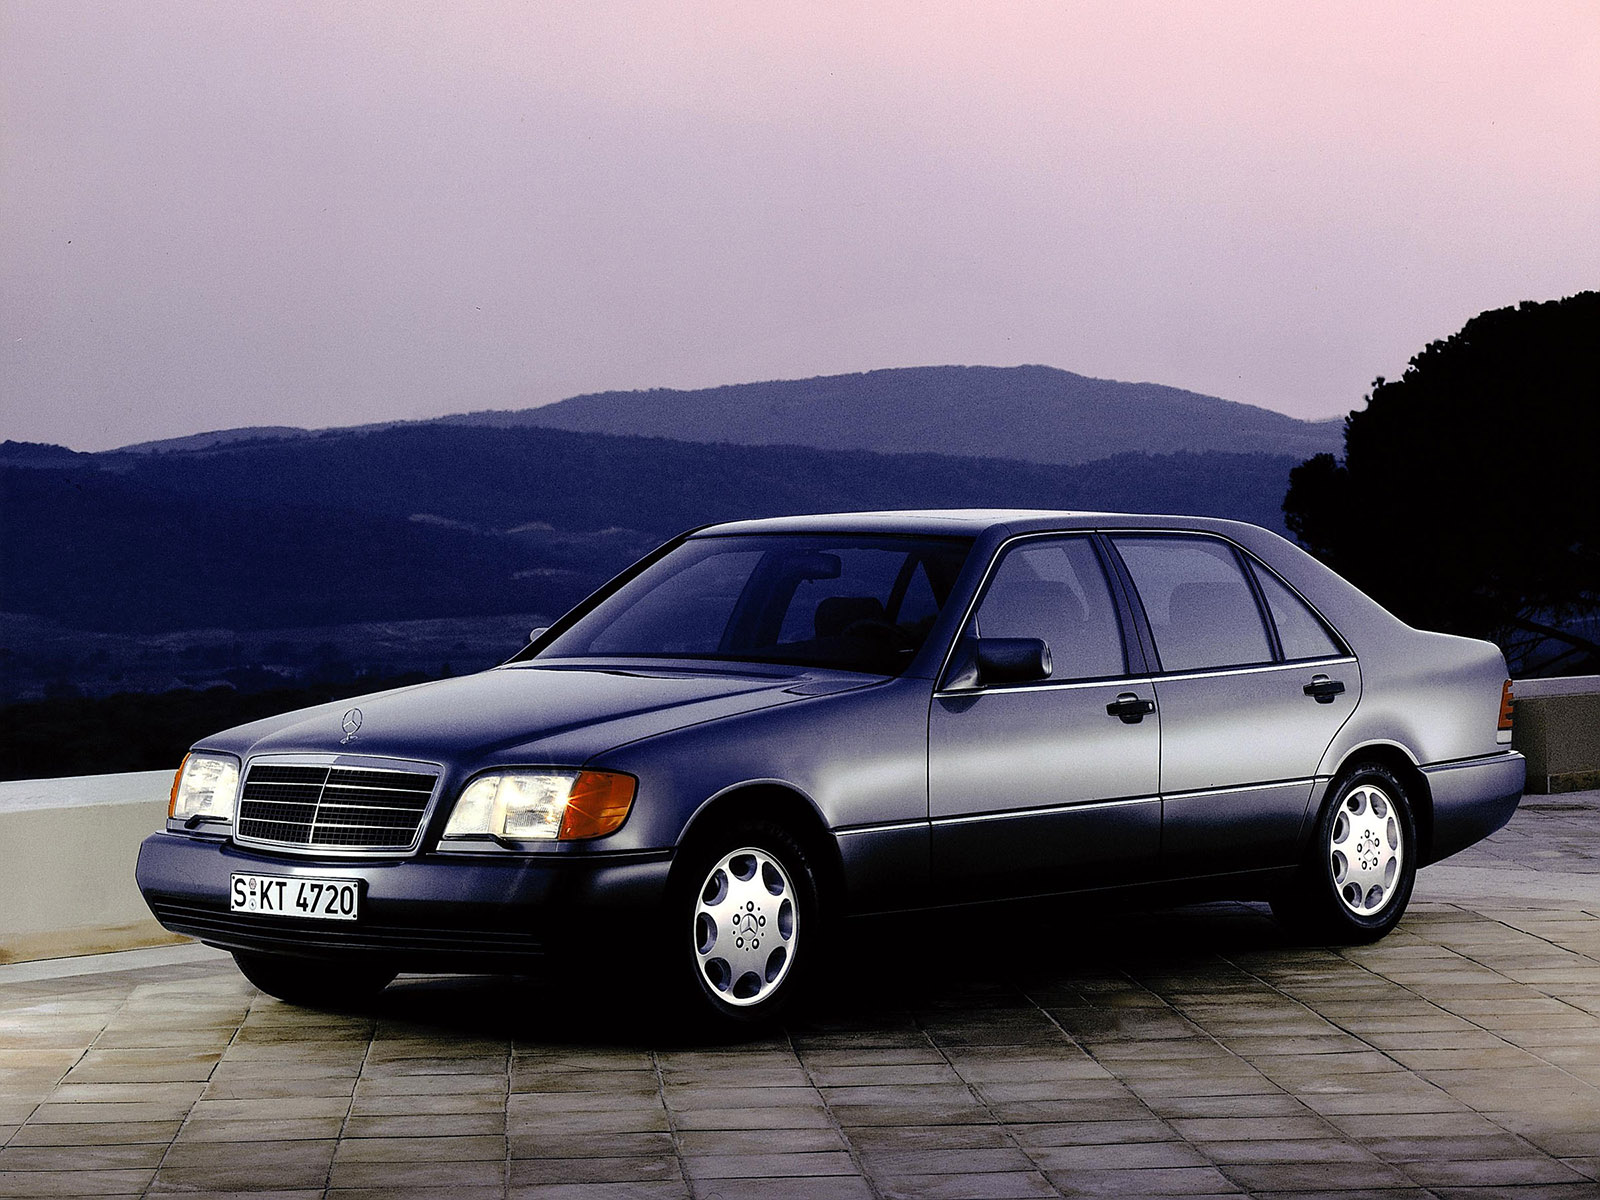 Mercedes-Benz S-Class W140 photos - PhotoGallery with 18 ...